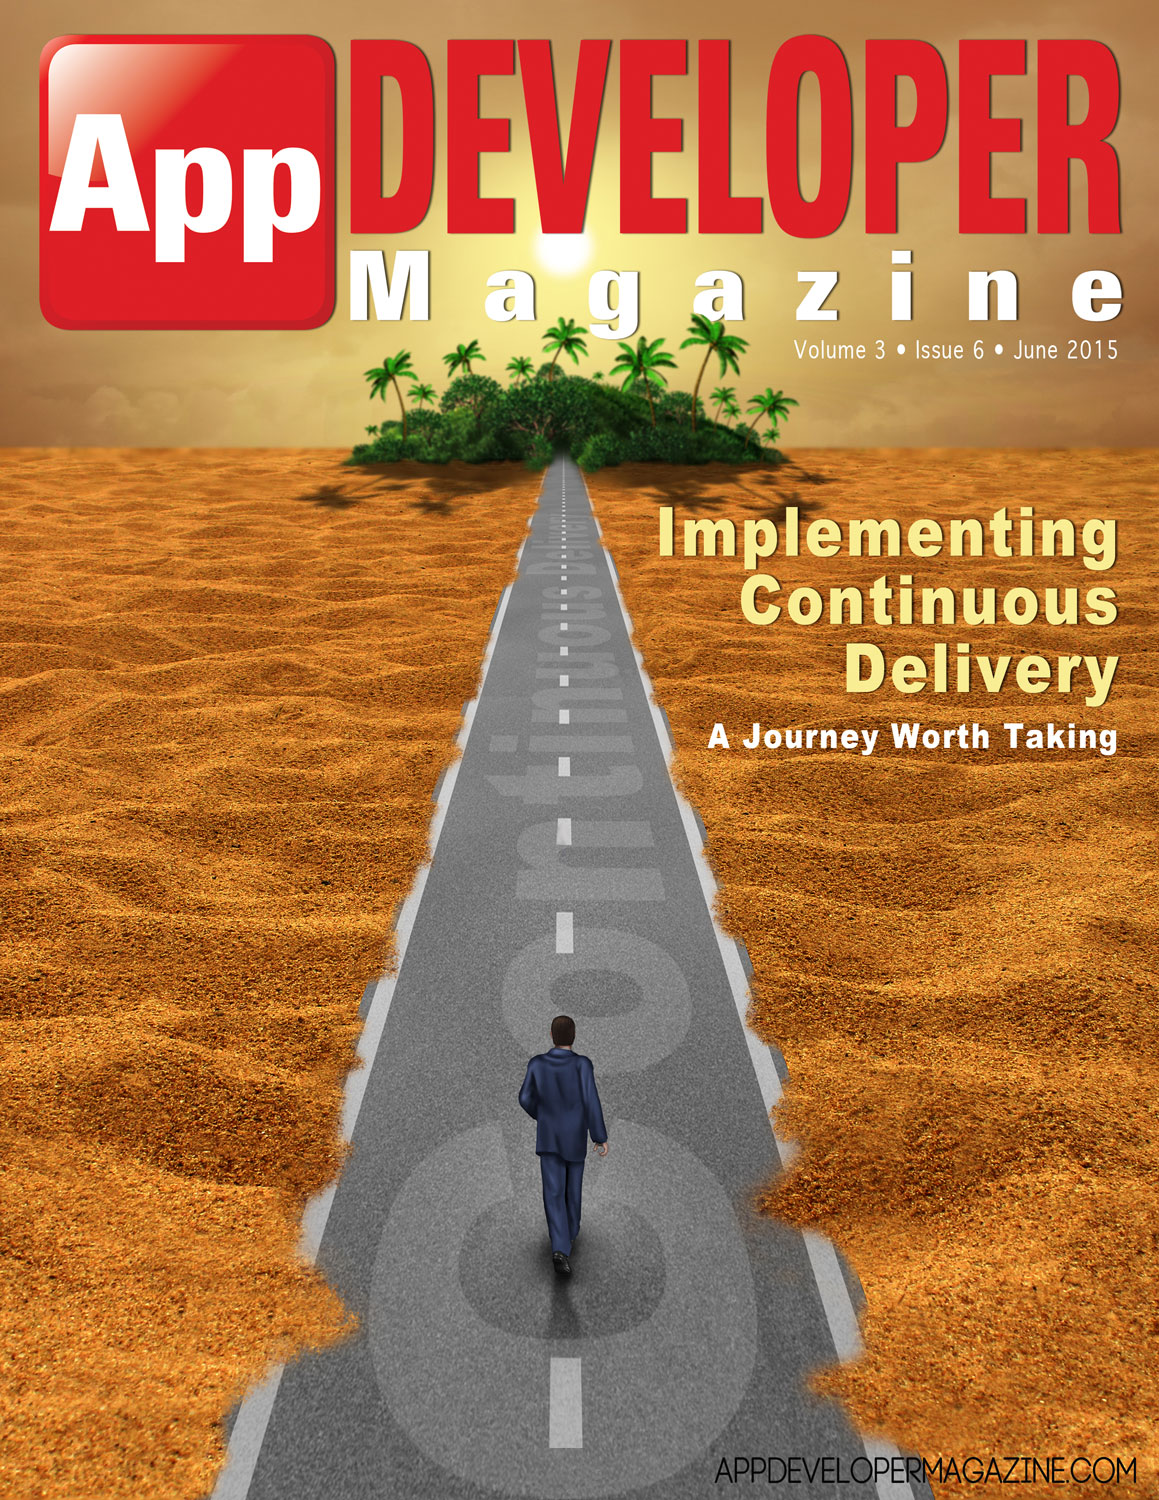 Read App Developer Magazine June 2015 issue